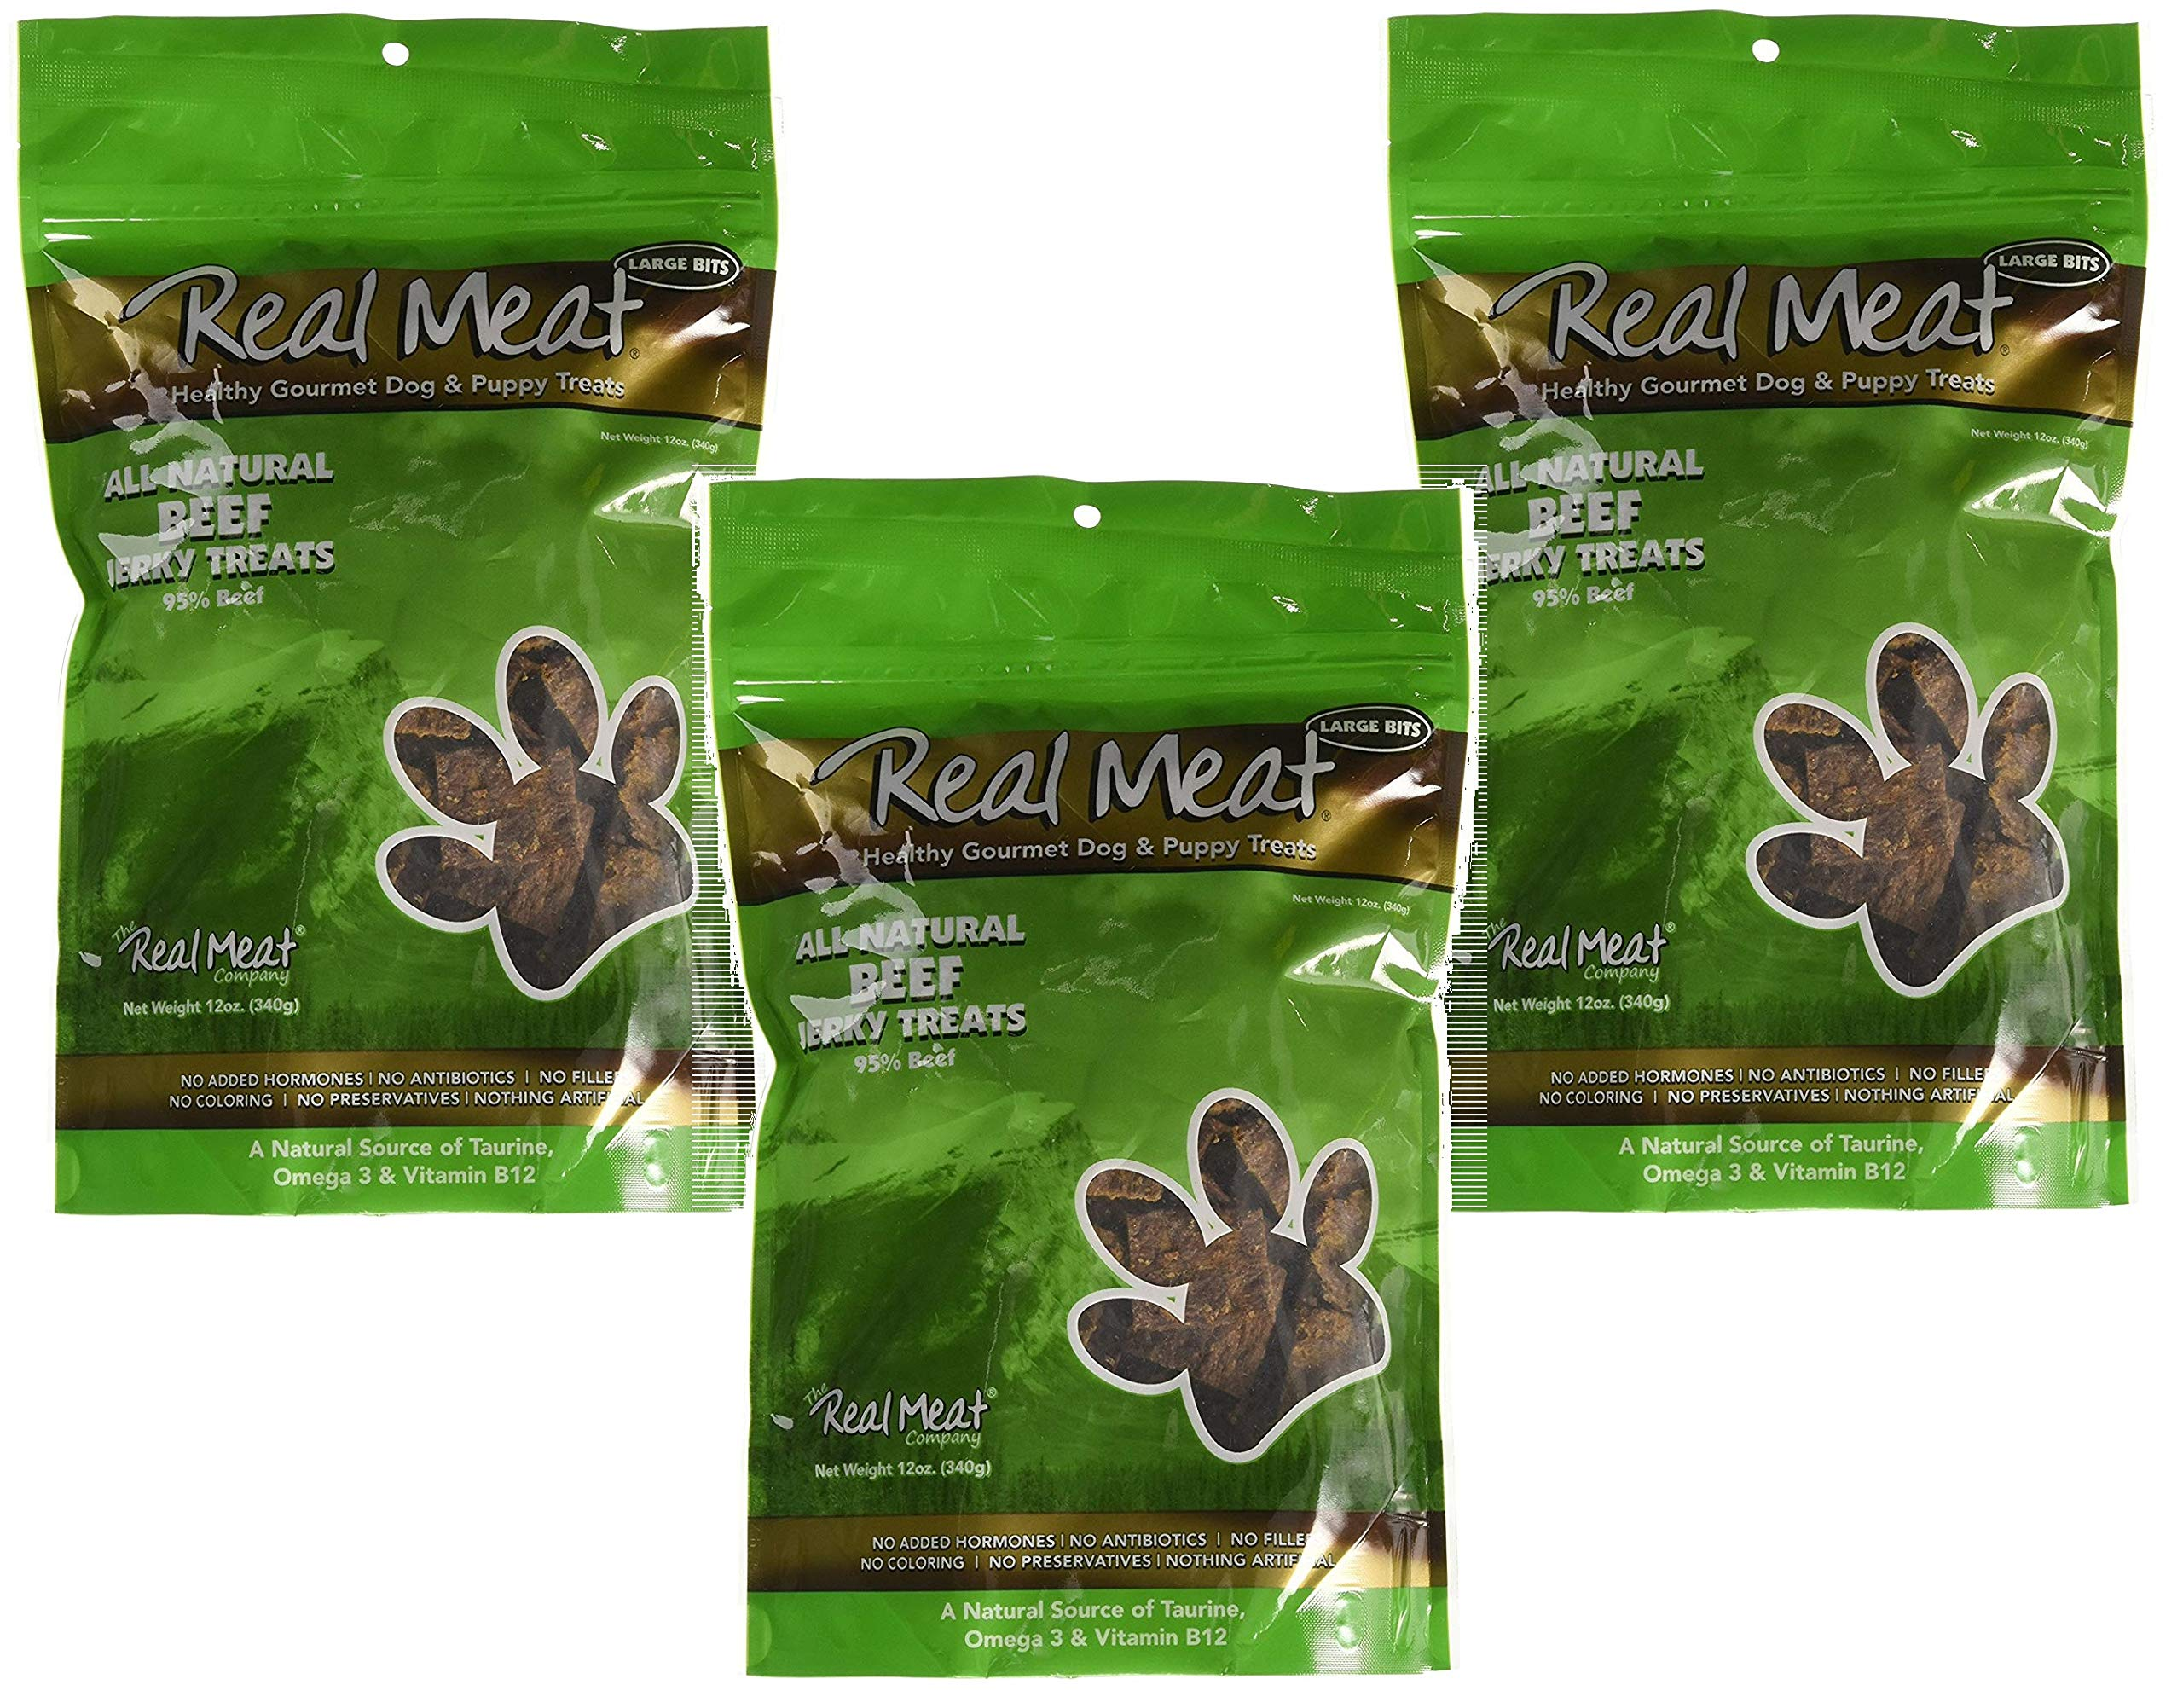 Real Meat Company 3 Pack of All Natural Beef Jerky Treats, 12 Ounces Each, Healthy Grain-Free Dog Treats with Taurine Omega 3 and Vitamin B12